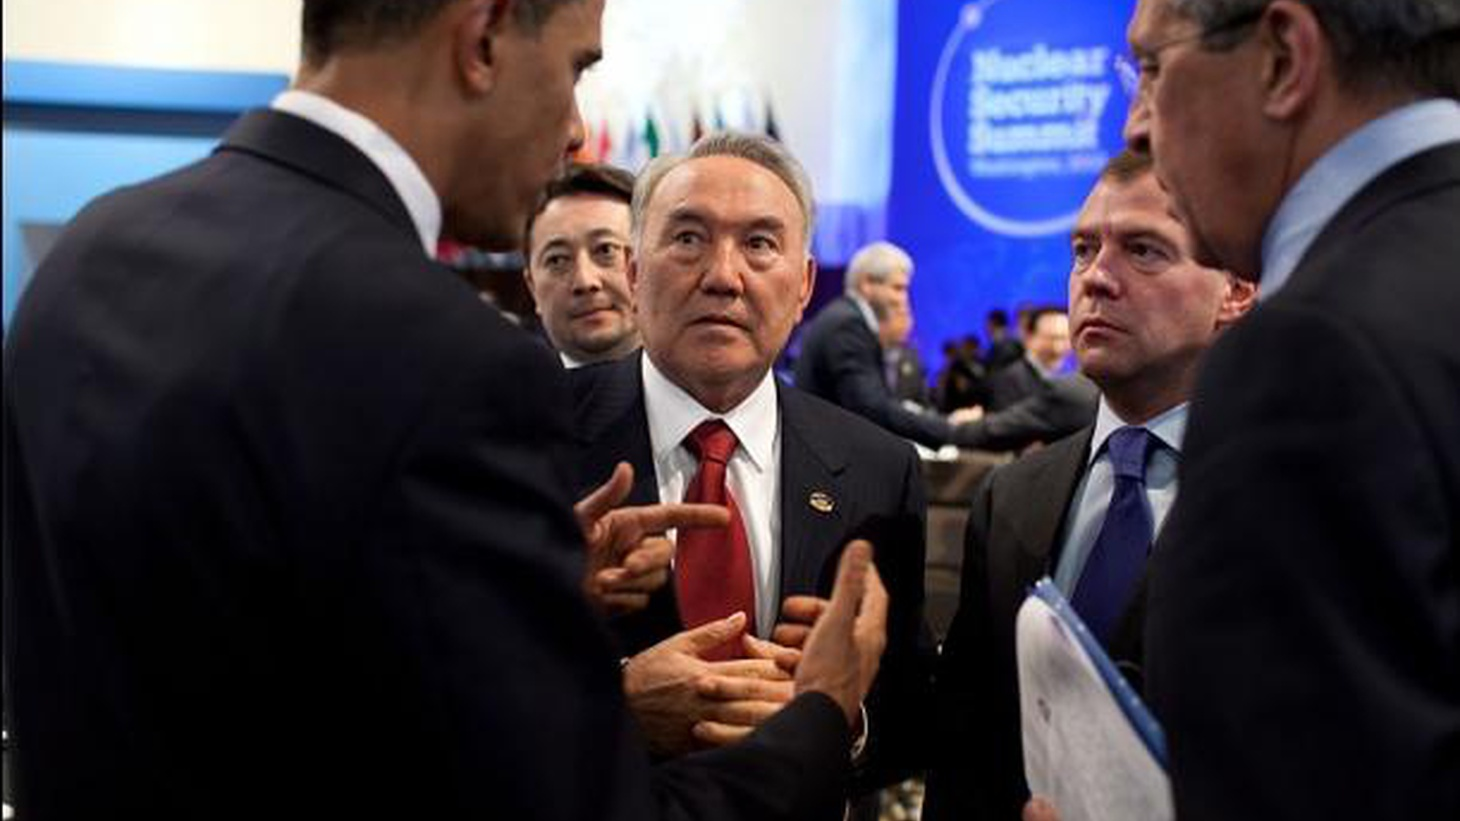 """Russia's Medvedev calls Obama's nuclear summit a """"complete success,"""" but adds, """"I hope we won't just go home feeling happy."""" What will it take to sustain agreements to """"lock down"""" nuclear materials? Is the threat of nuclear terrorism overblown? Also, a major earthquake strikes the Dalai Lama's hometown, and climate change and a tax on gasoline."""